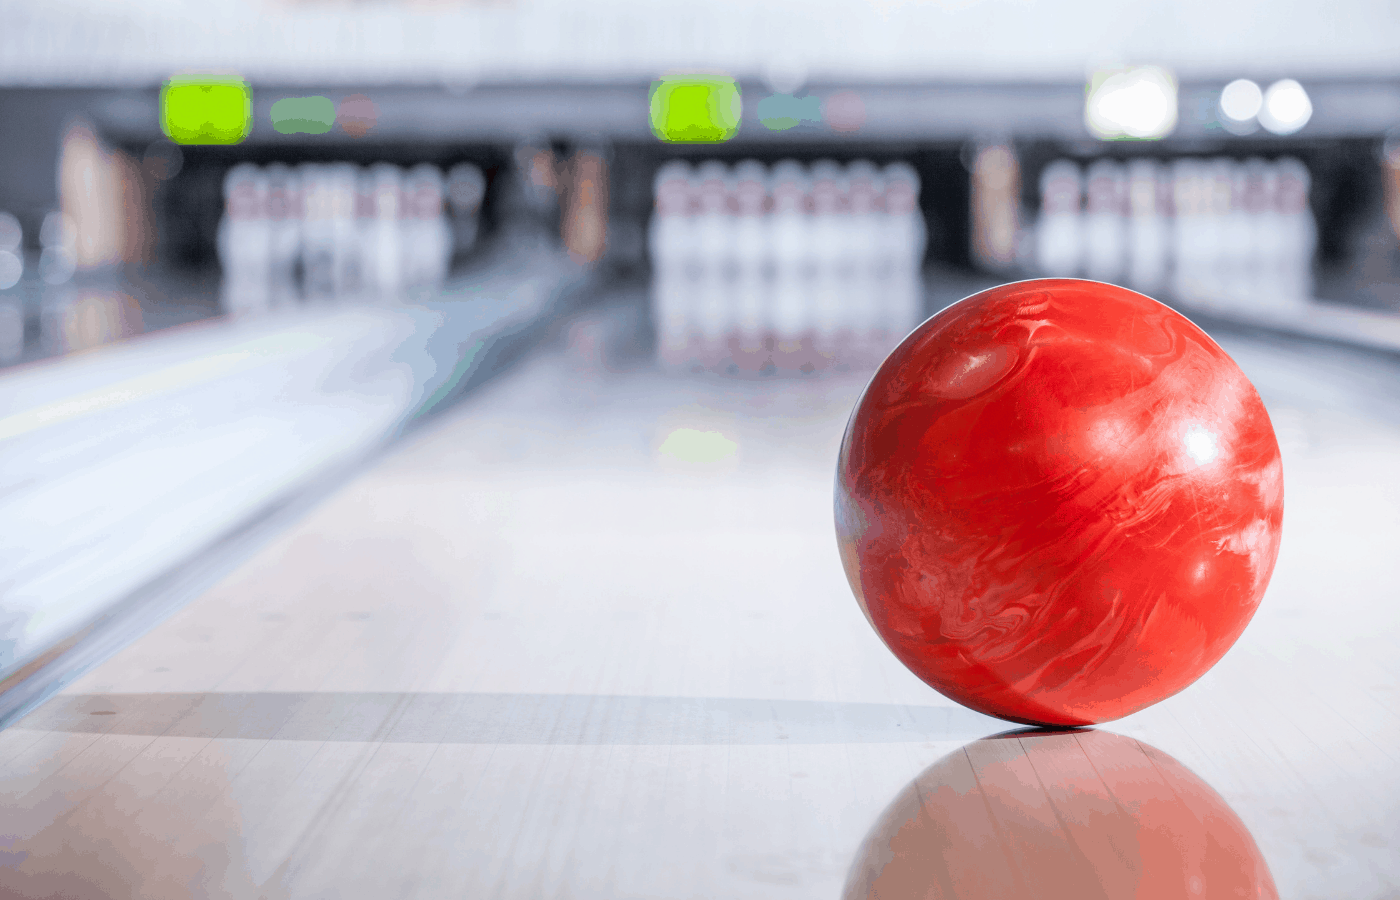 can you use car polish on a bowling ball